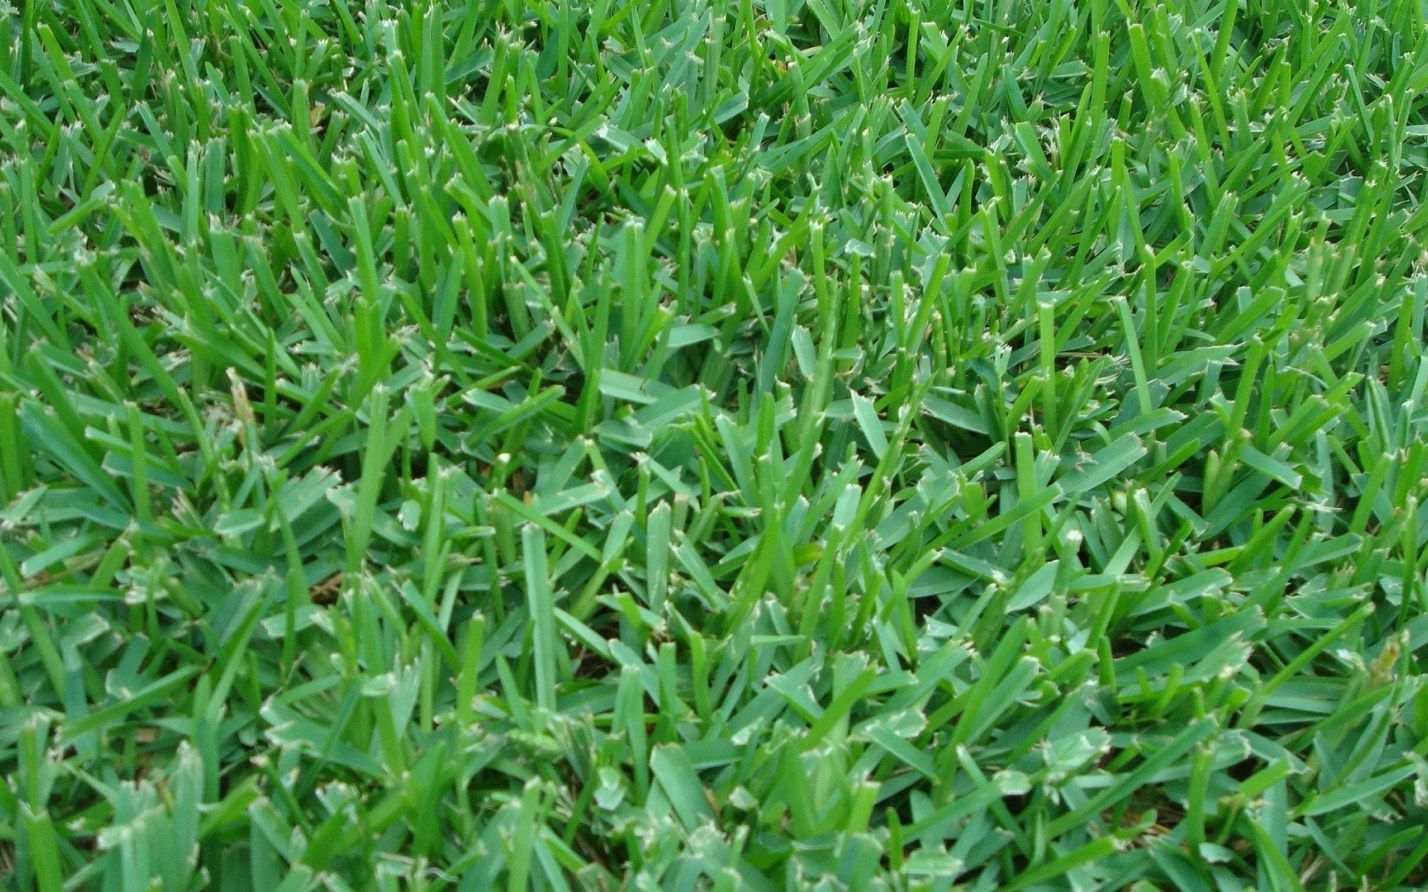 Where To Find Good St Augustine Grass Seed How To Grow It Homesthetics Inspiring Ideas For Your Home Grass Seed Planting Grass St Augustine Grass